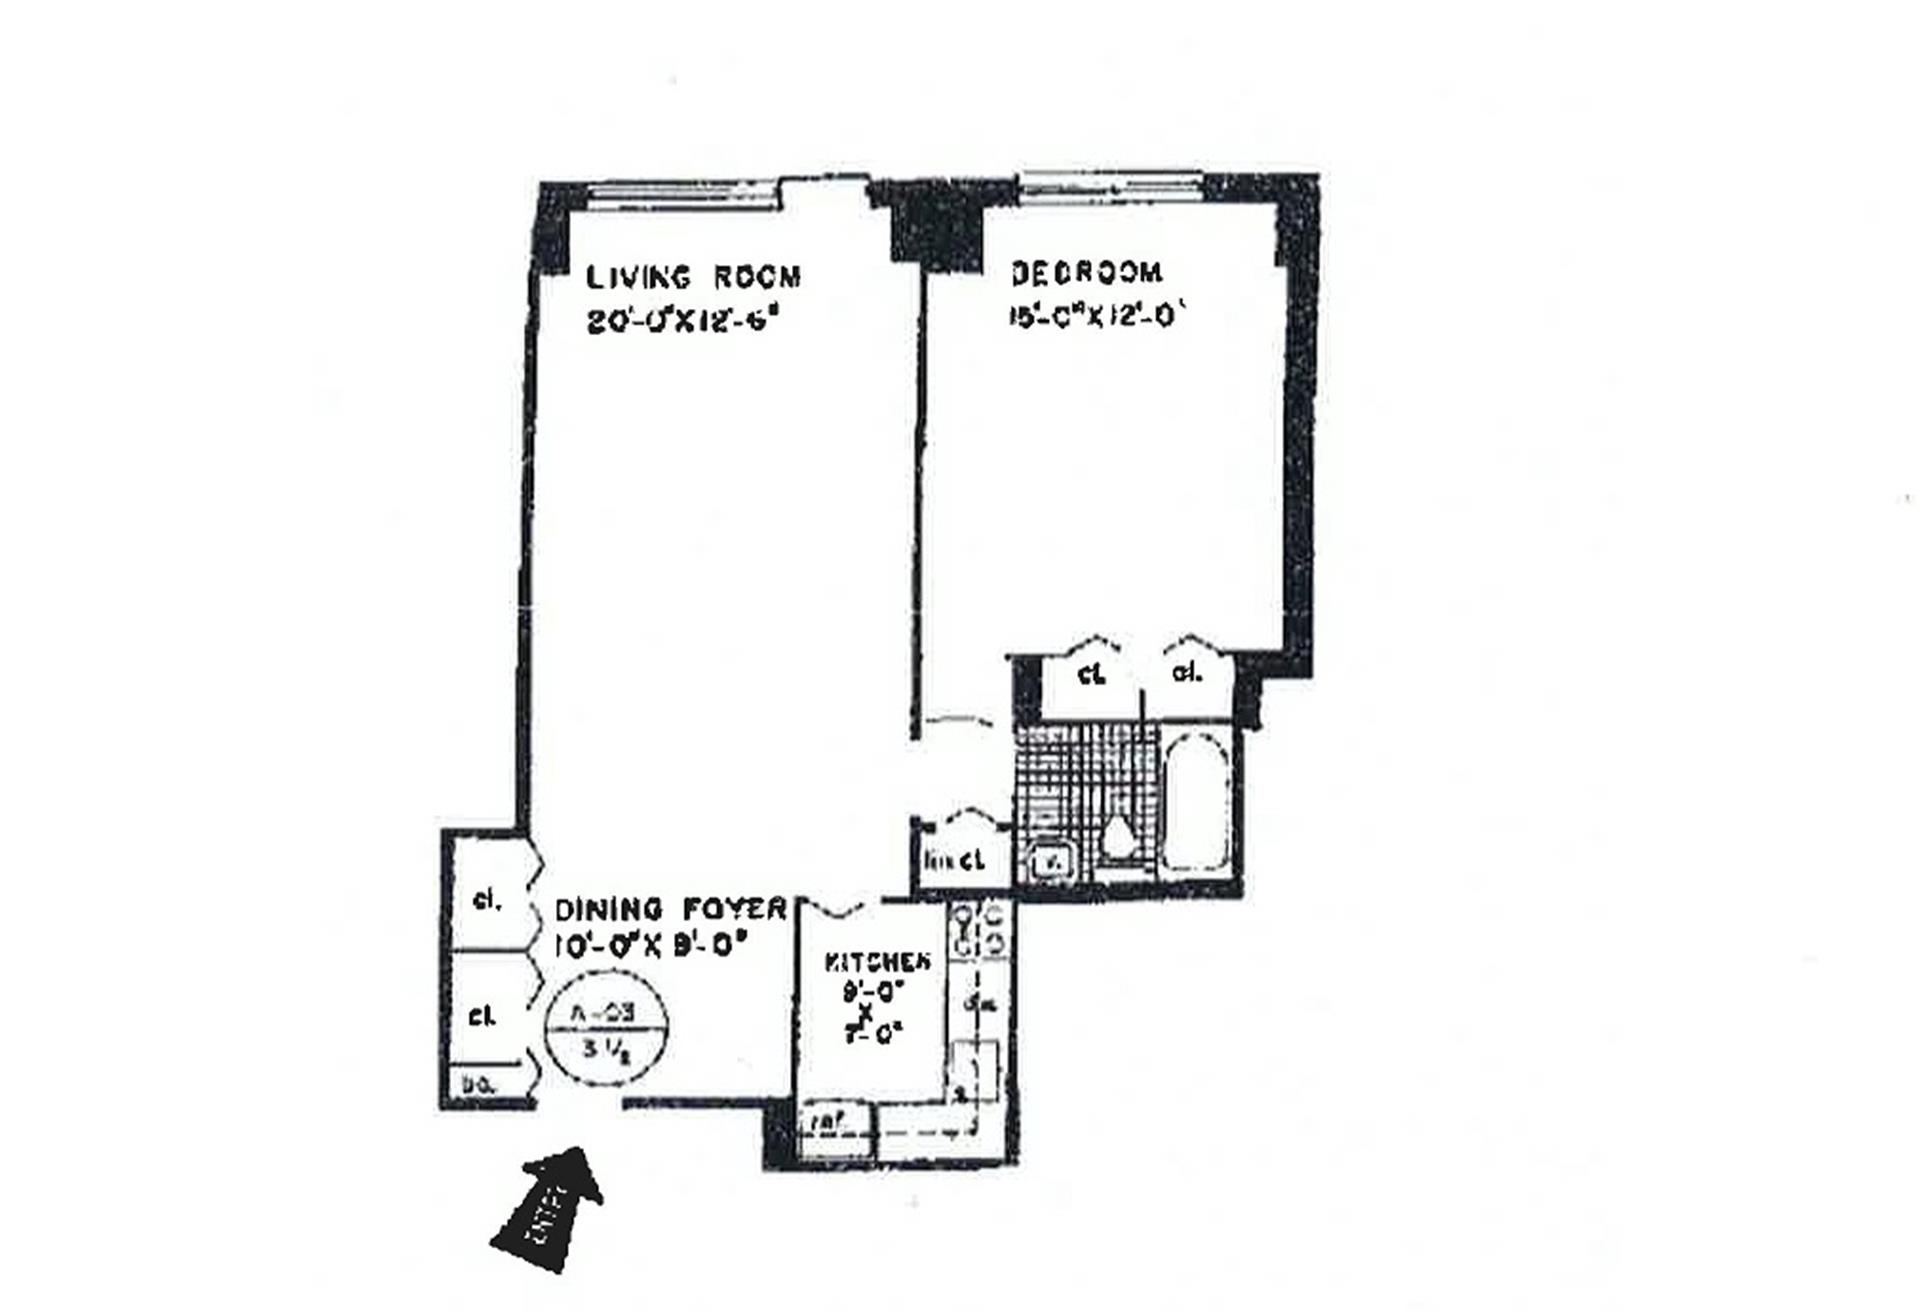 Floor plan of Newport East Inc., 370 East 76th St, A1503 - Upper East Side, New York